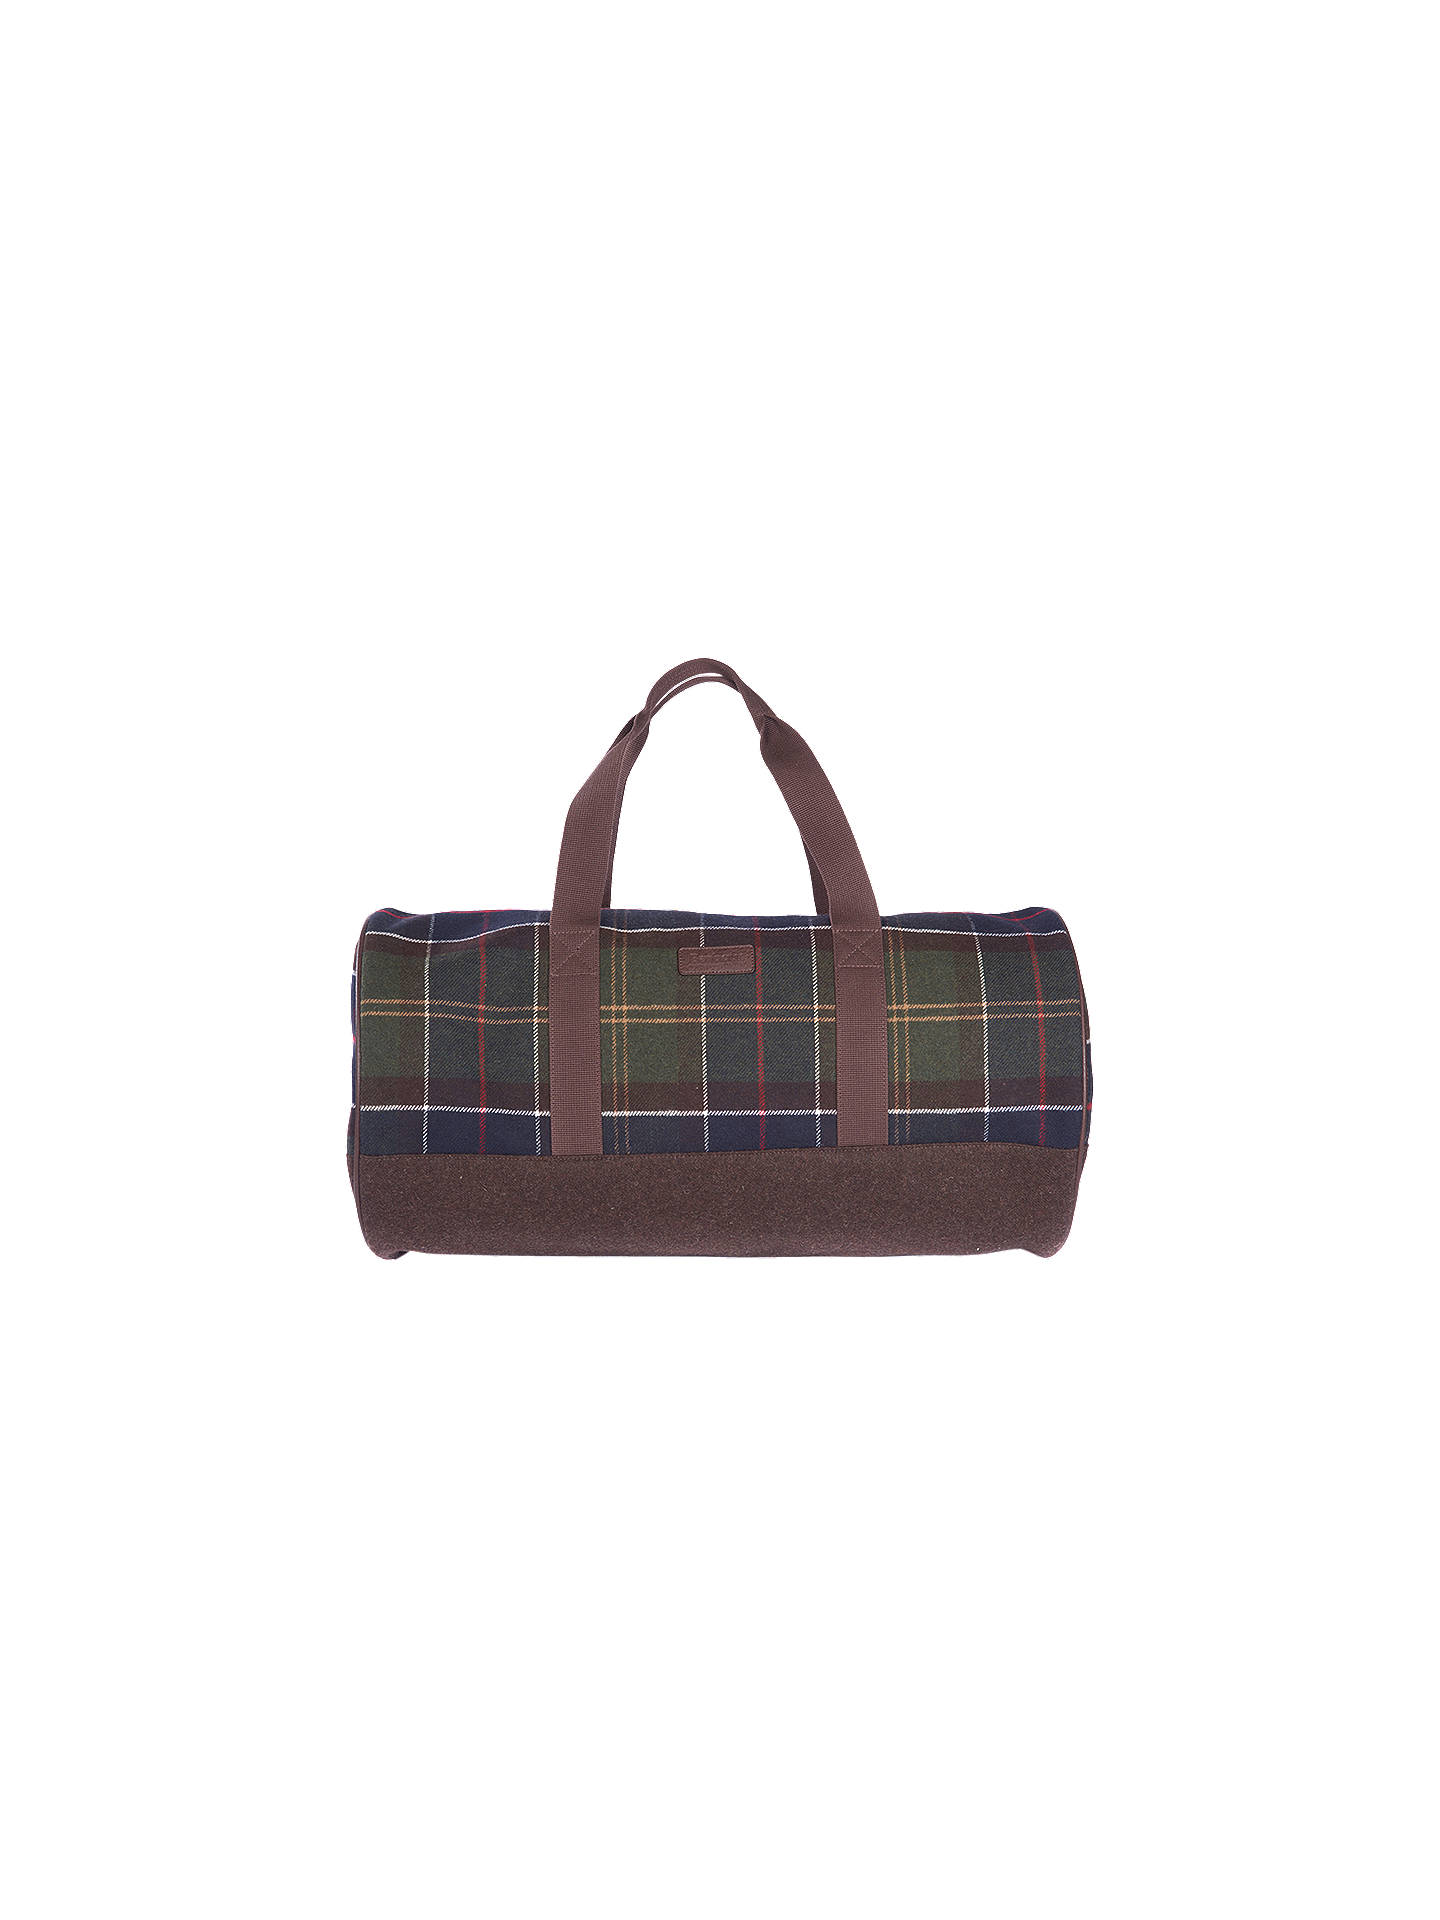 BuyBarbour Hardwick Classic Tartan Holdall, Green Online at johnlewis.com